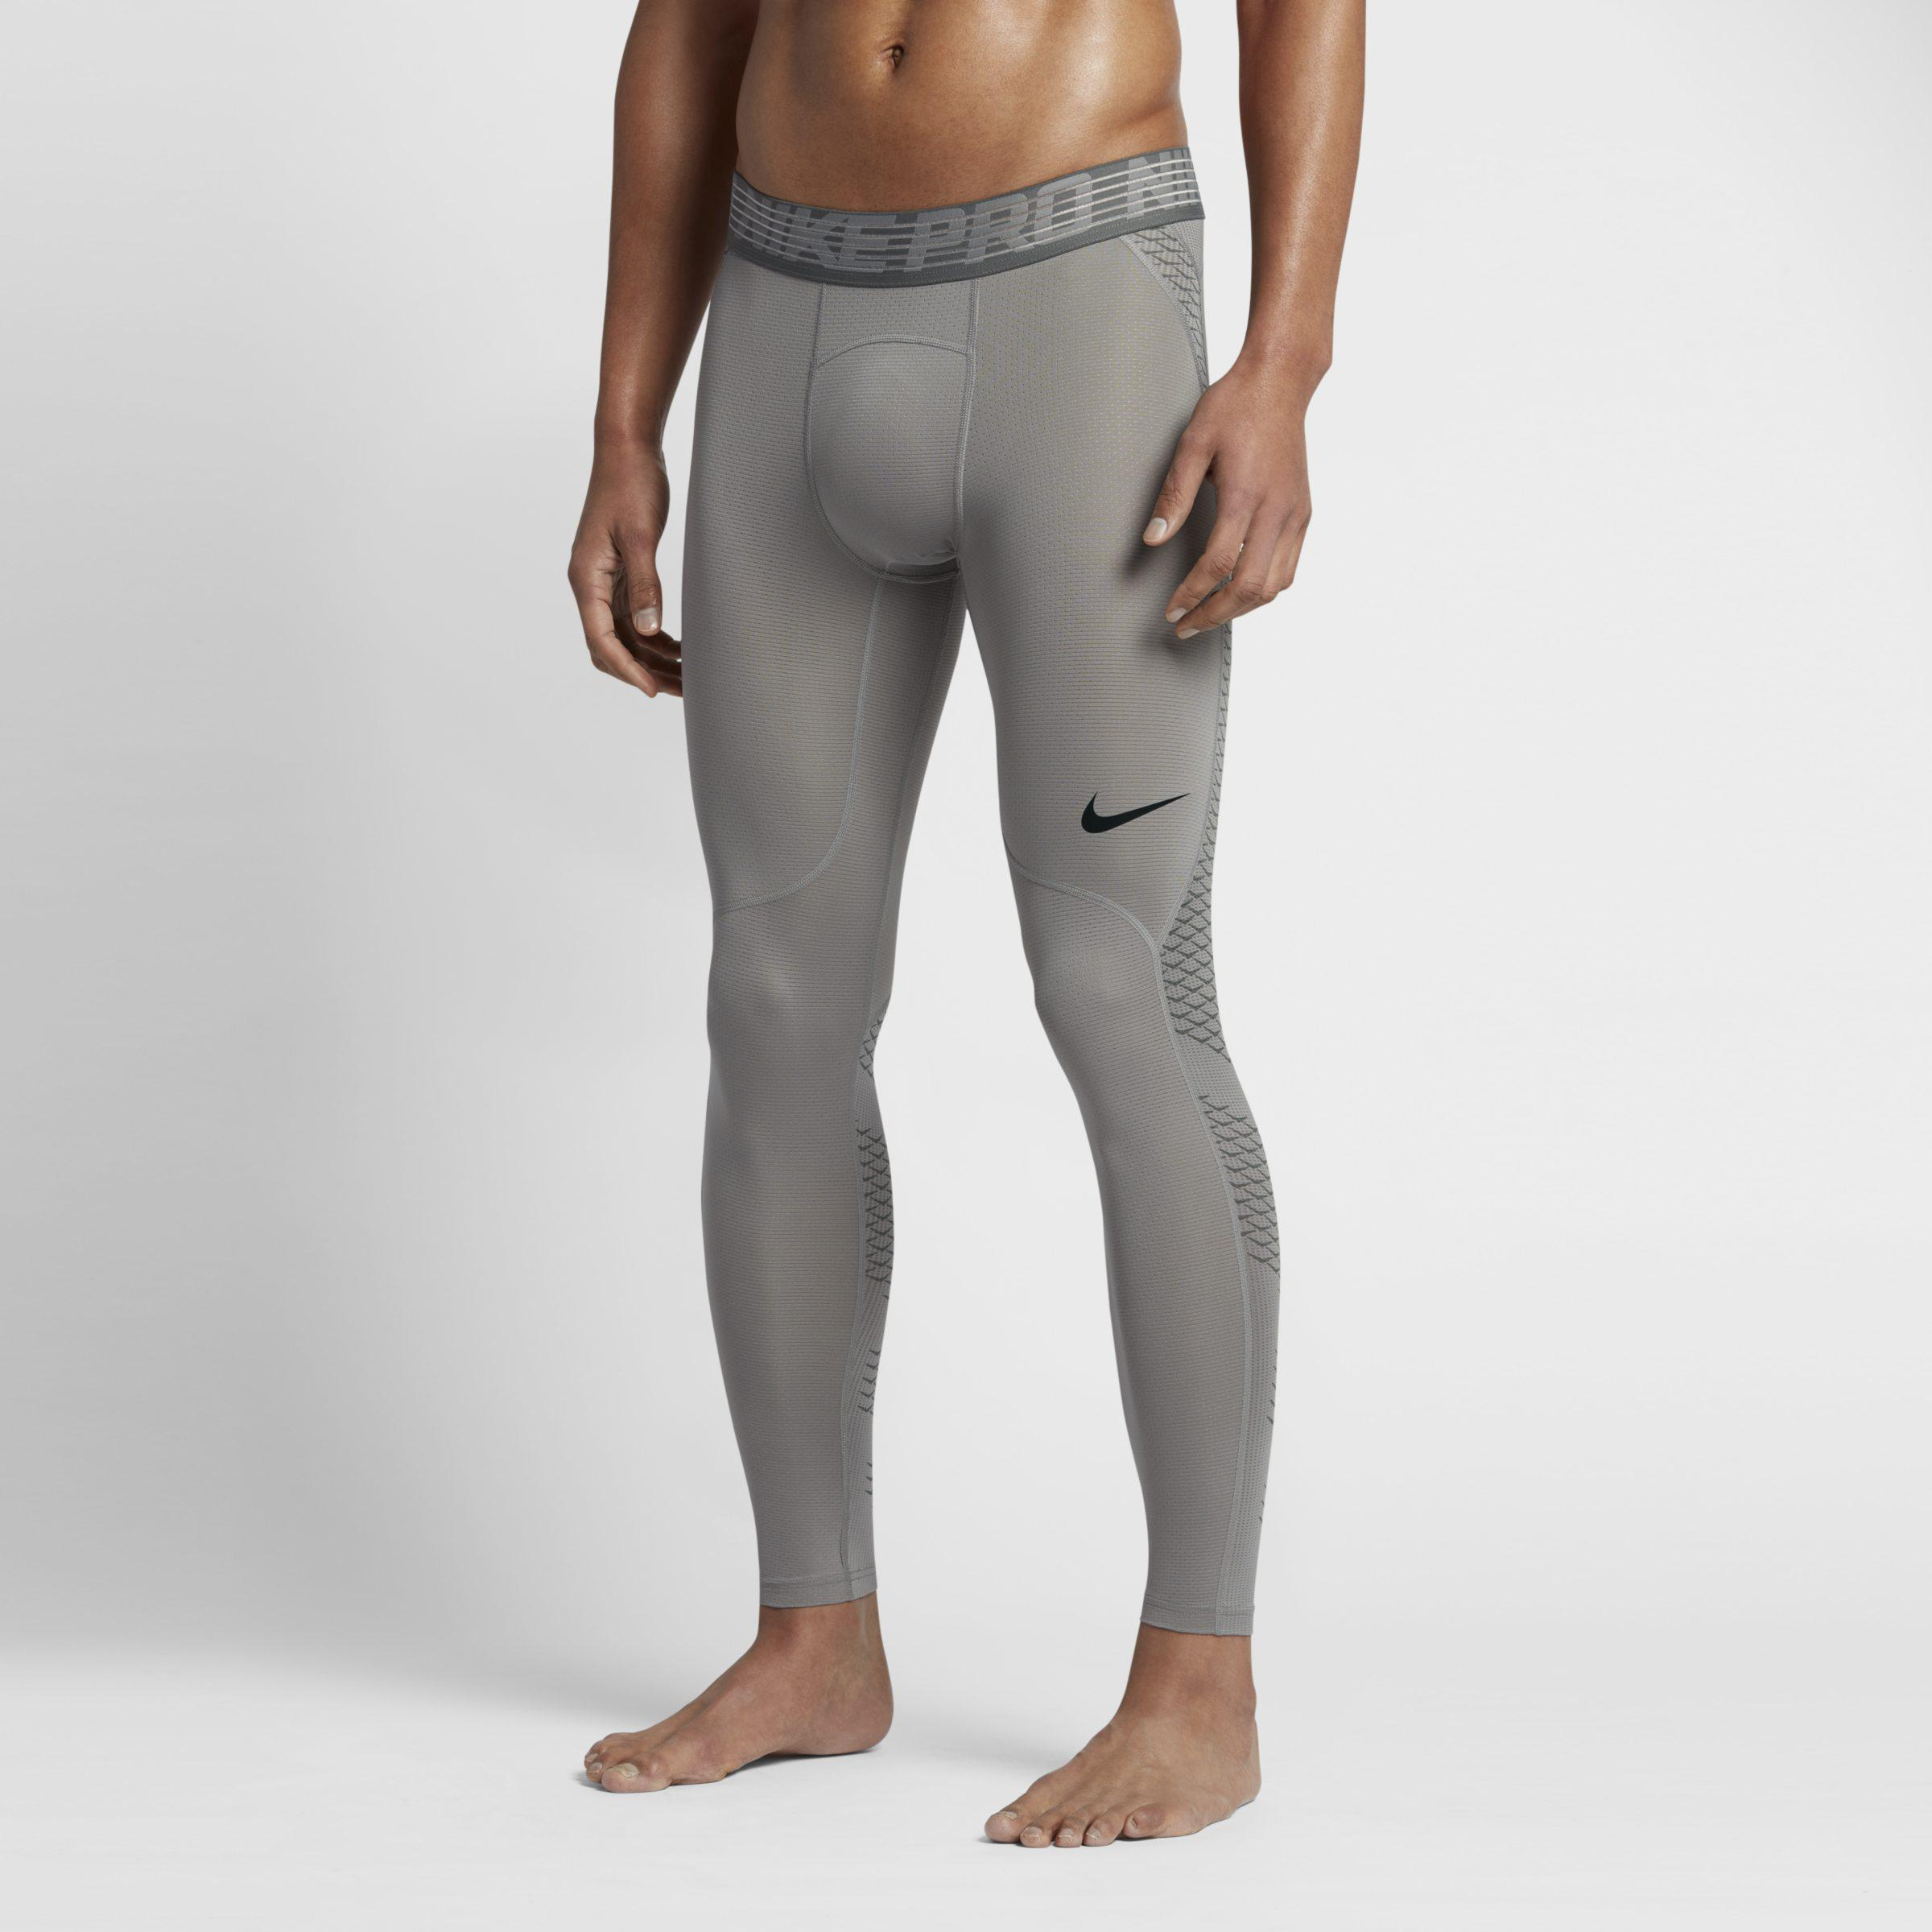 0a2d39014765a Nike Pro Hypercool Training Tights in Gray for Men - Lyst